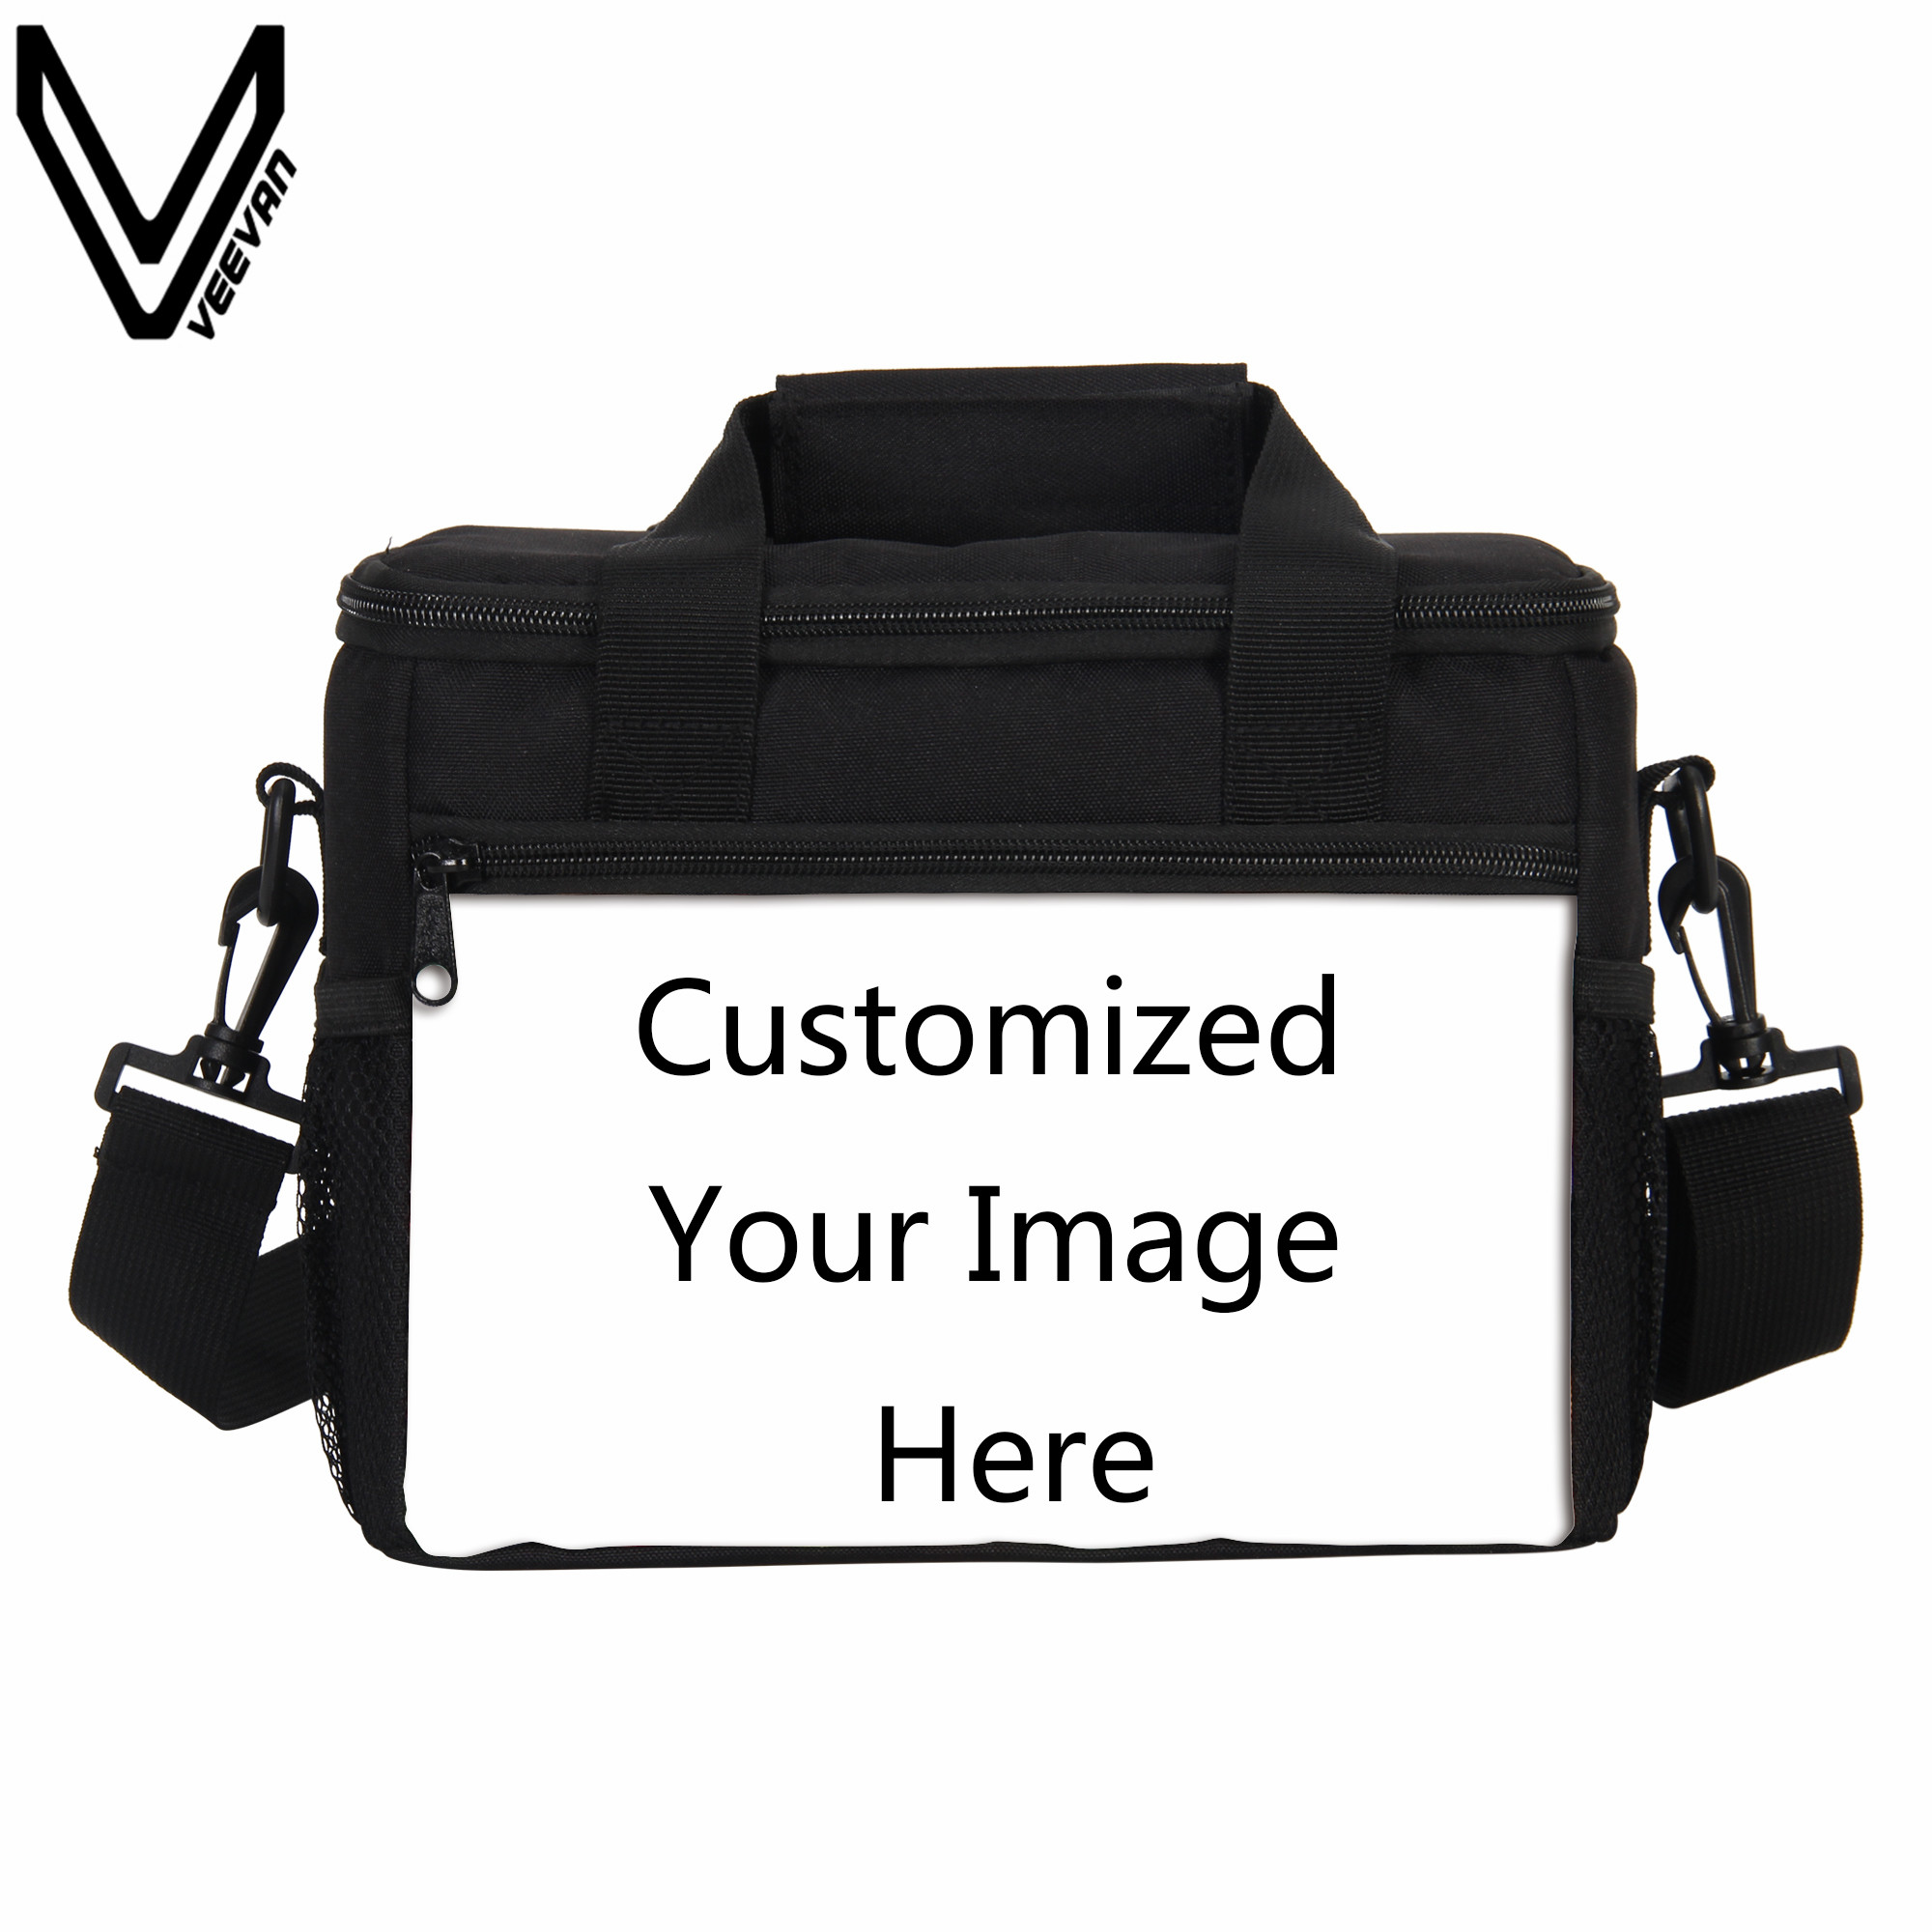 VEEVANV Small Thermo Lunch Bags Customized Image Here Women Thermal Insulated <font><b>Cooler</b></font> Bags Men Portable Food Tote Handbags Picnic